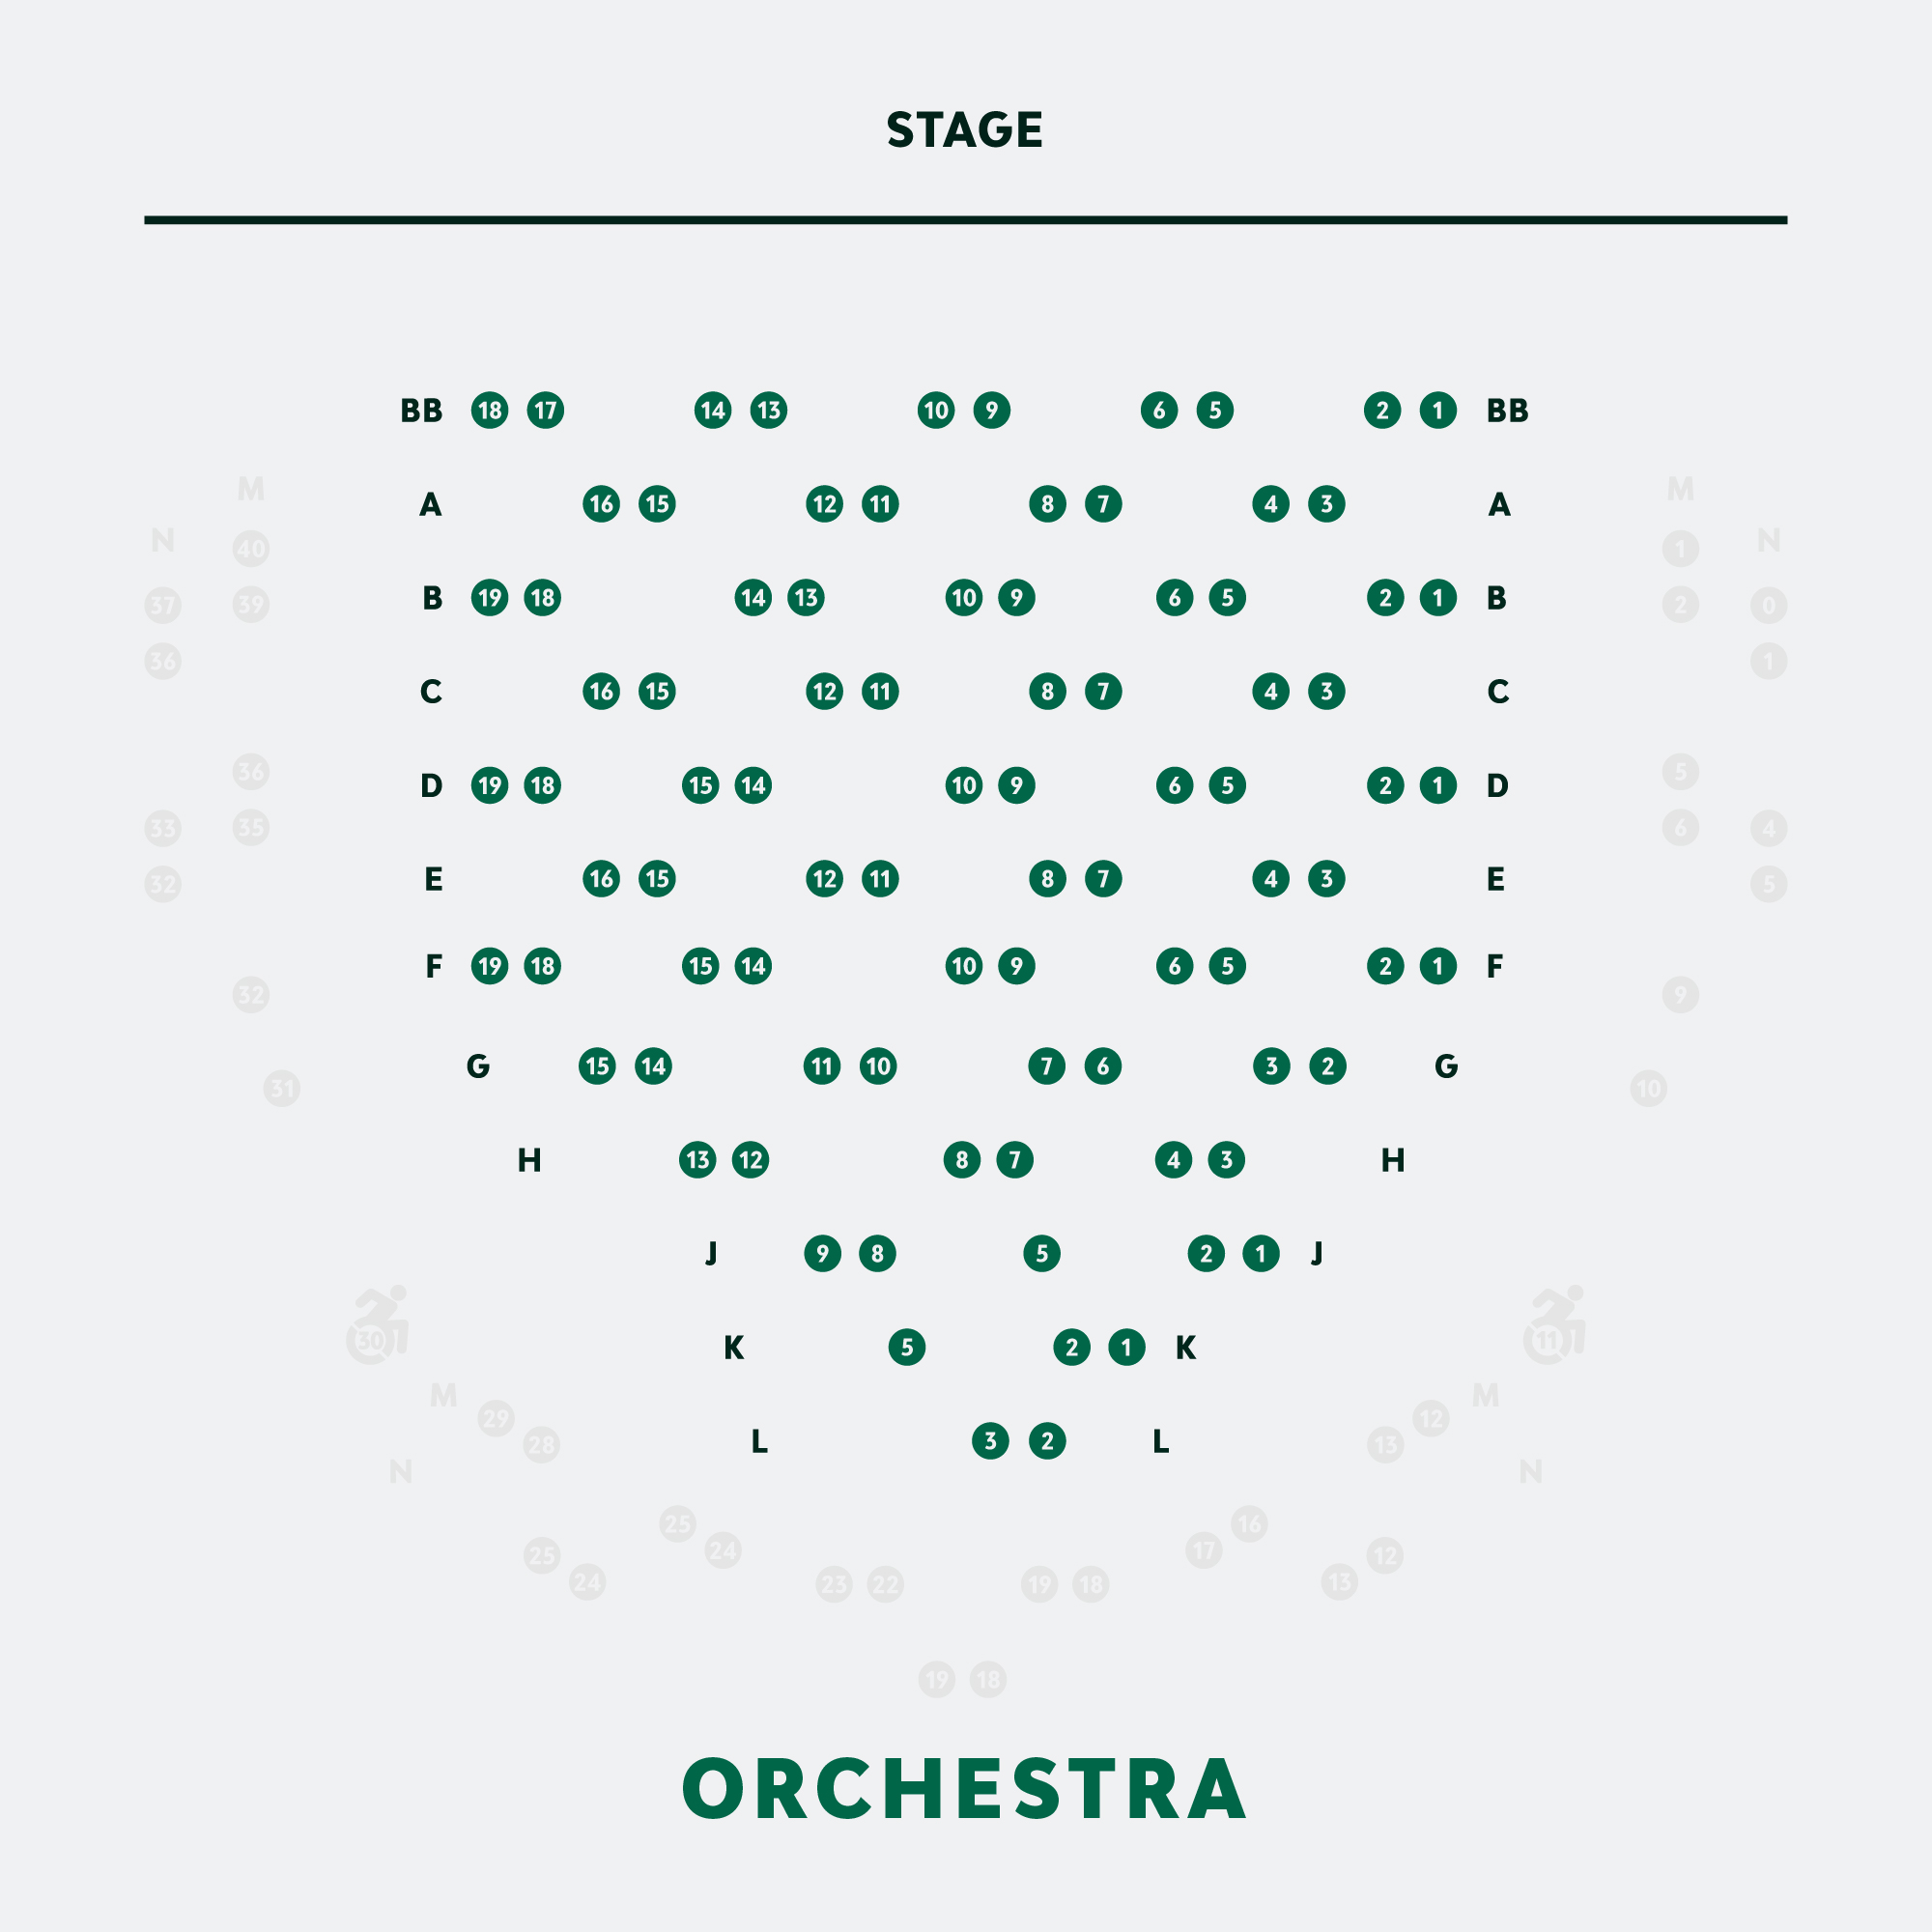 Physically Distanced Orchestra Seating Chart